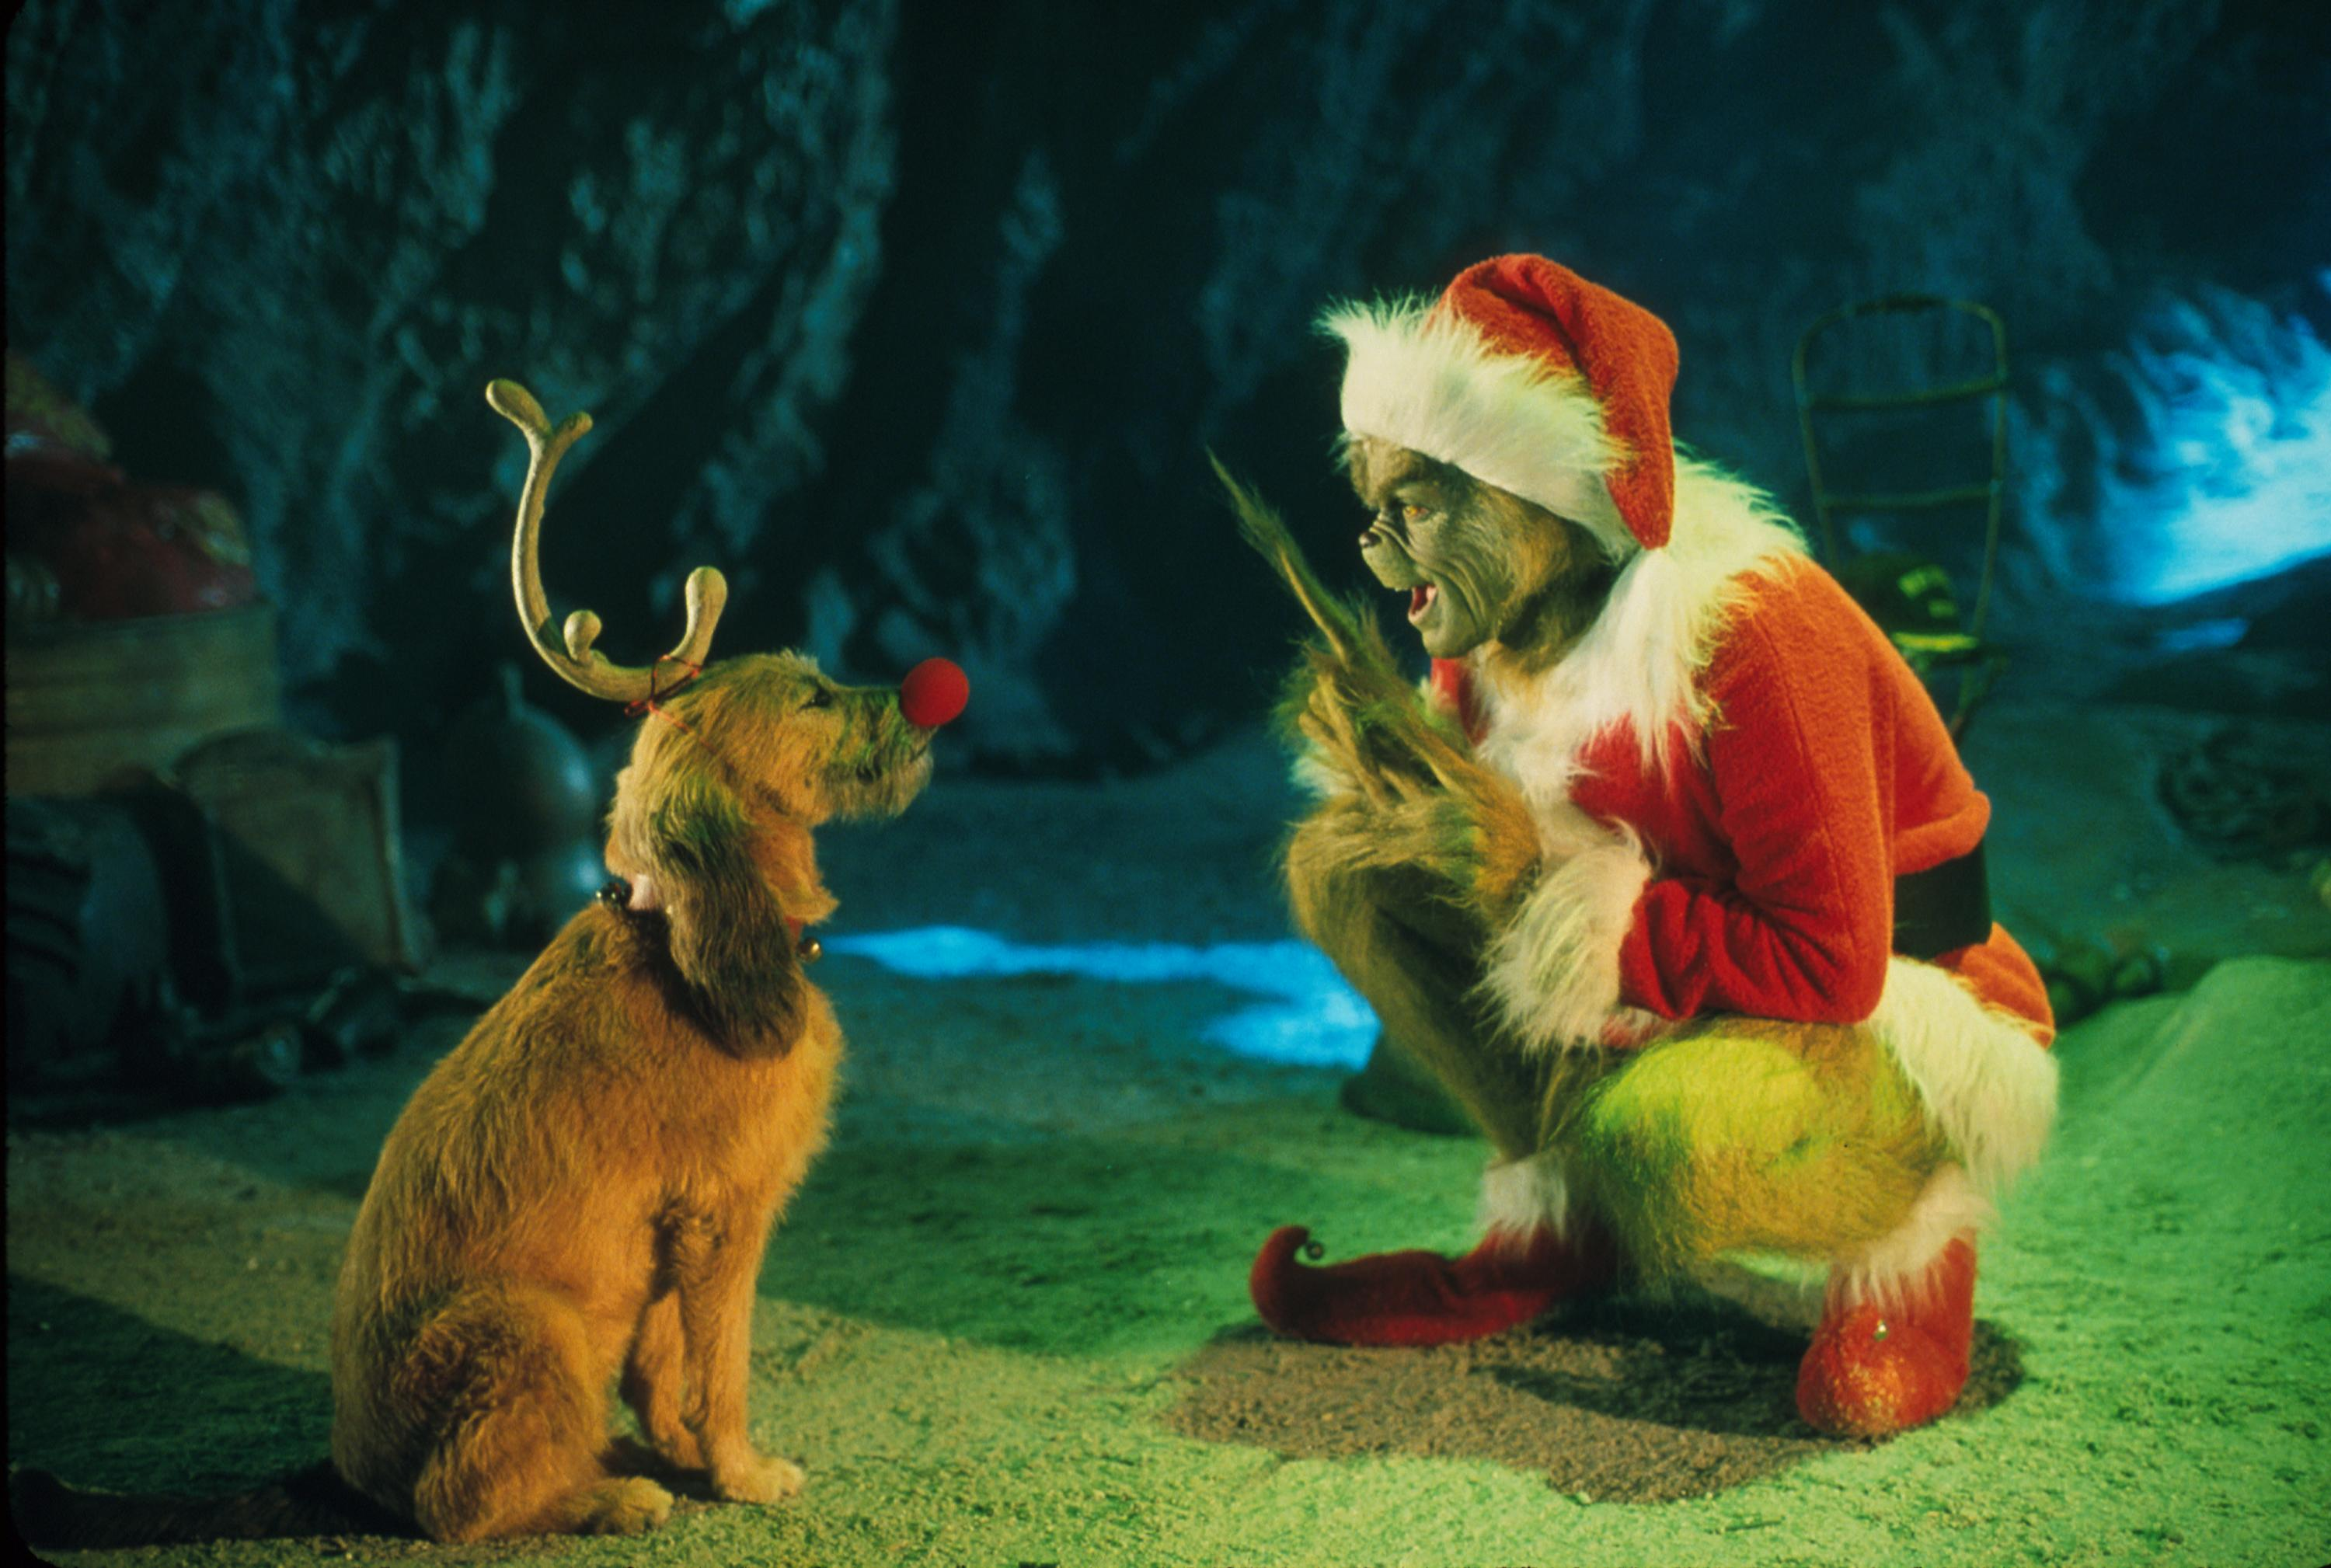 Uncategorized The Grinch And His Dog 6 reasons why the real star of how grinch stole christmas is max dog